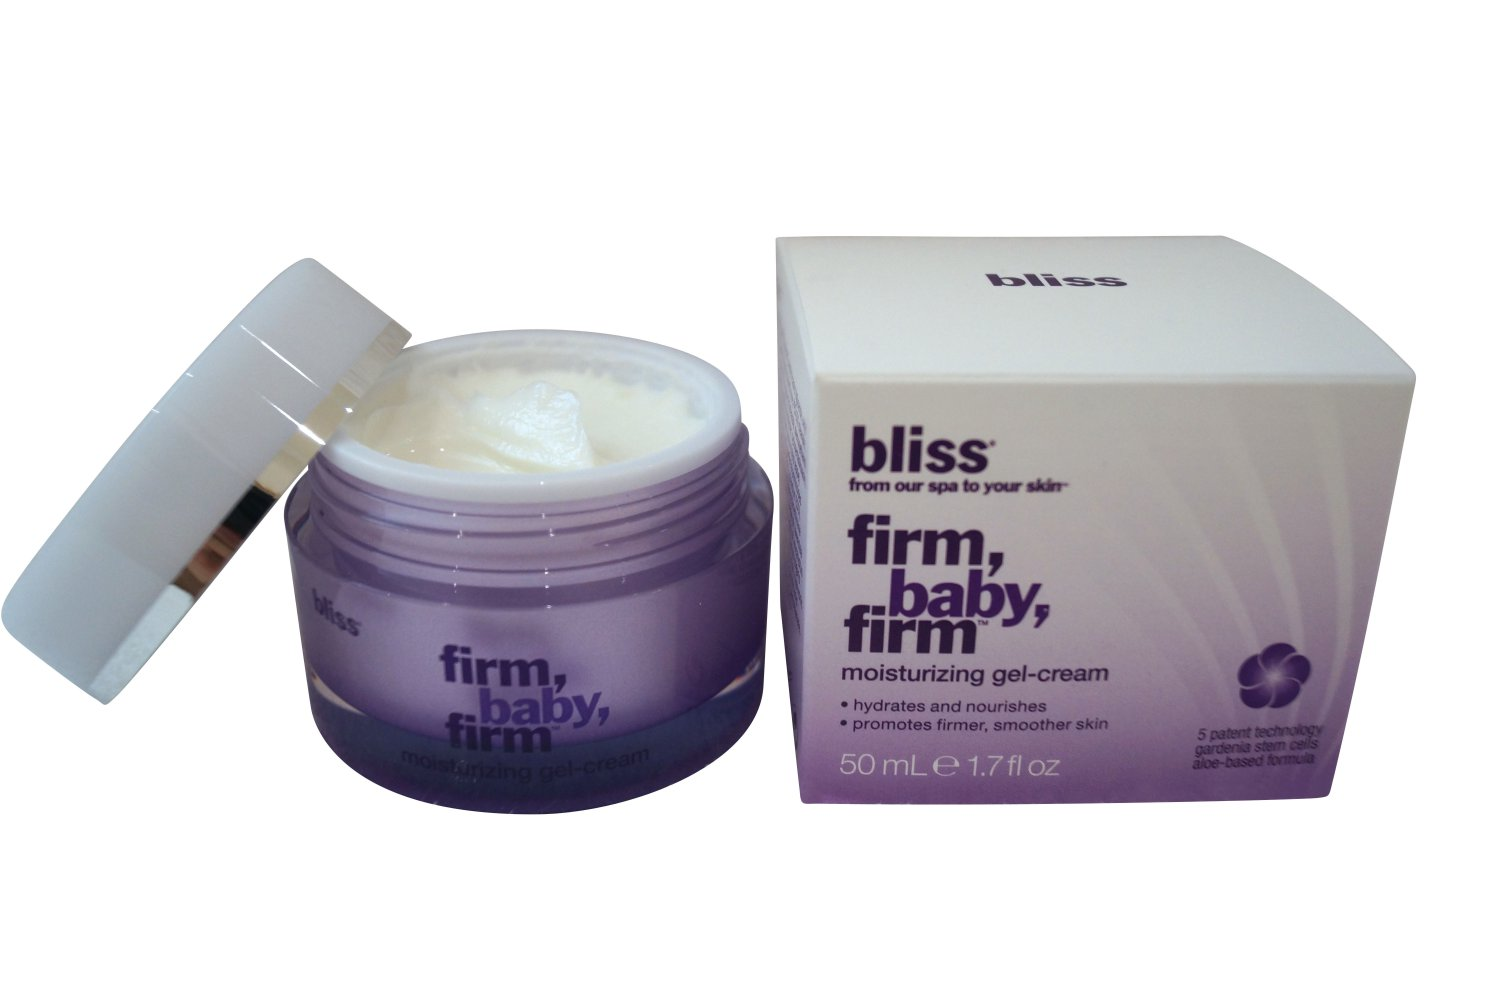 Bliss Firm, Baby Firm Moisturizing Gel Cream 1.7 oz